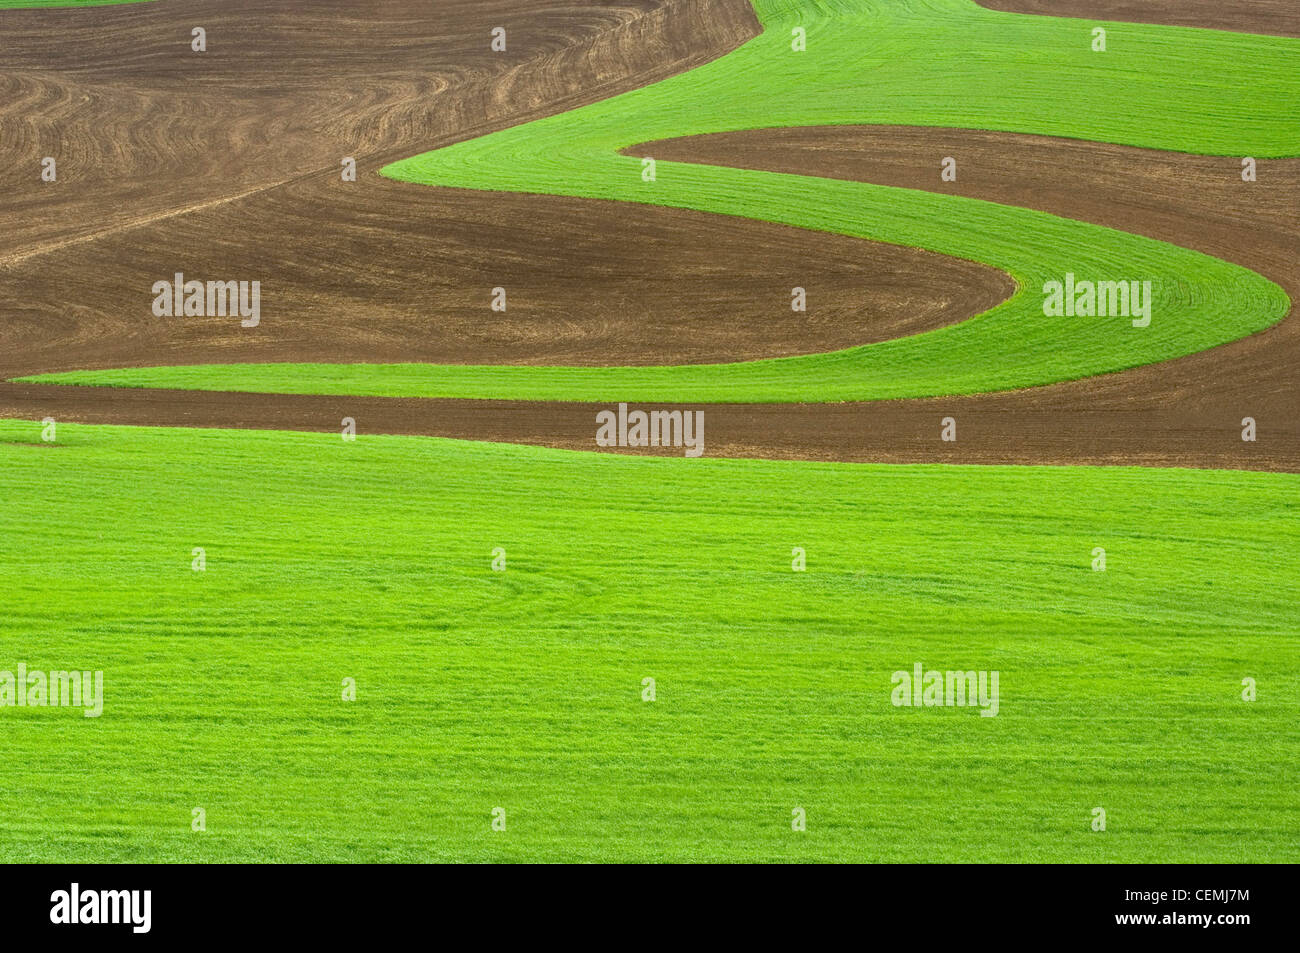 Growing and plowing patterns in the fields of the Palouse, Eastern Washington - Stock Image